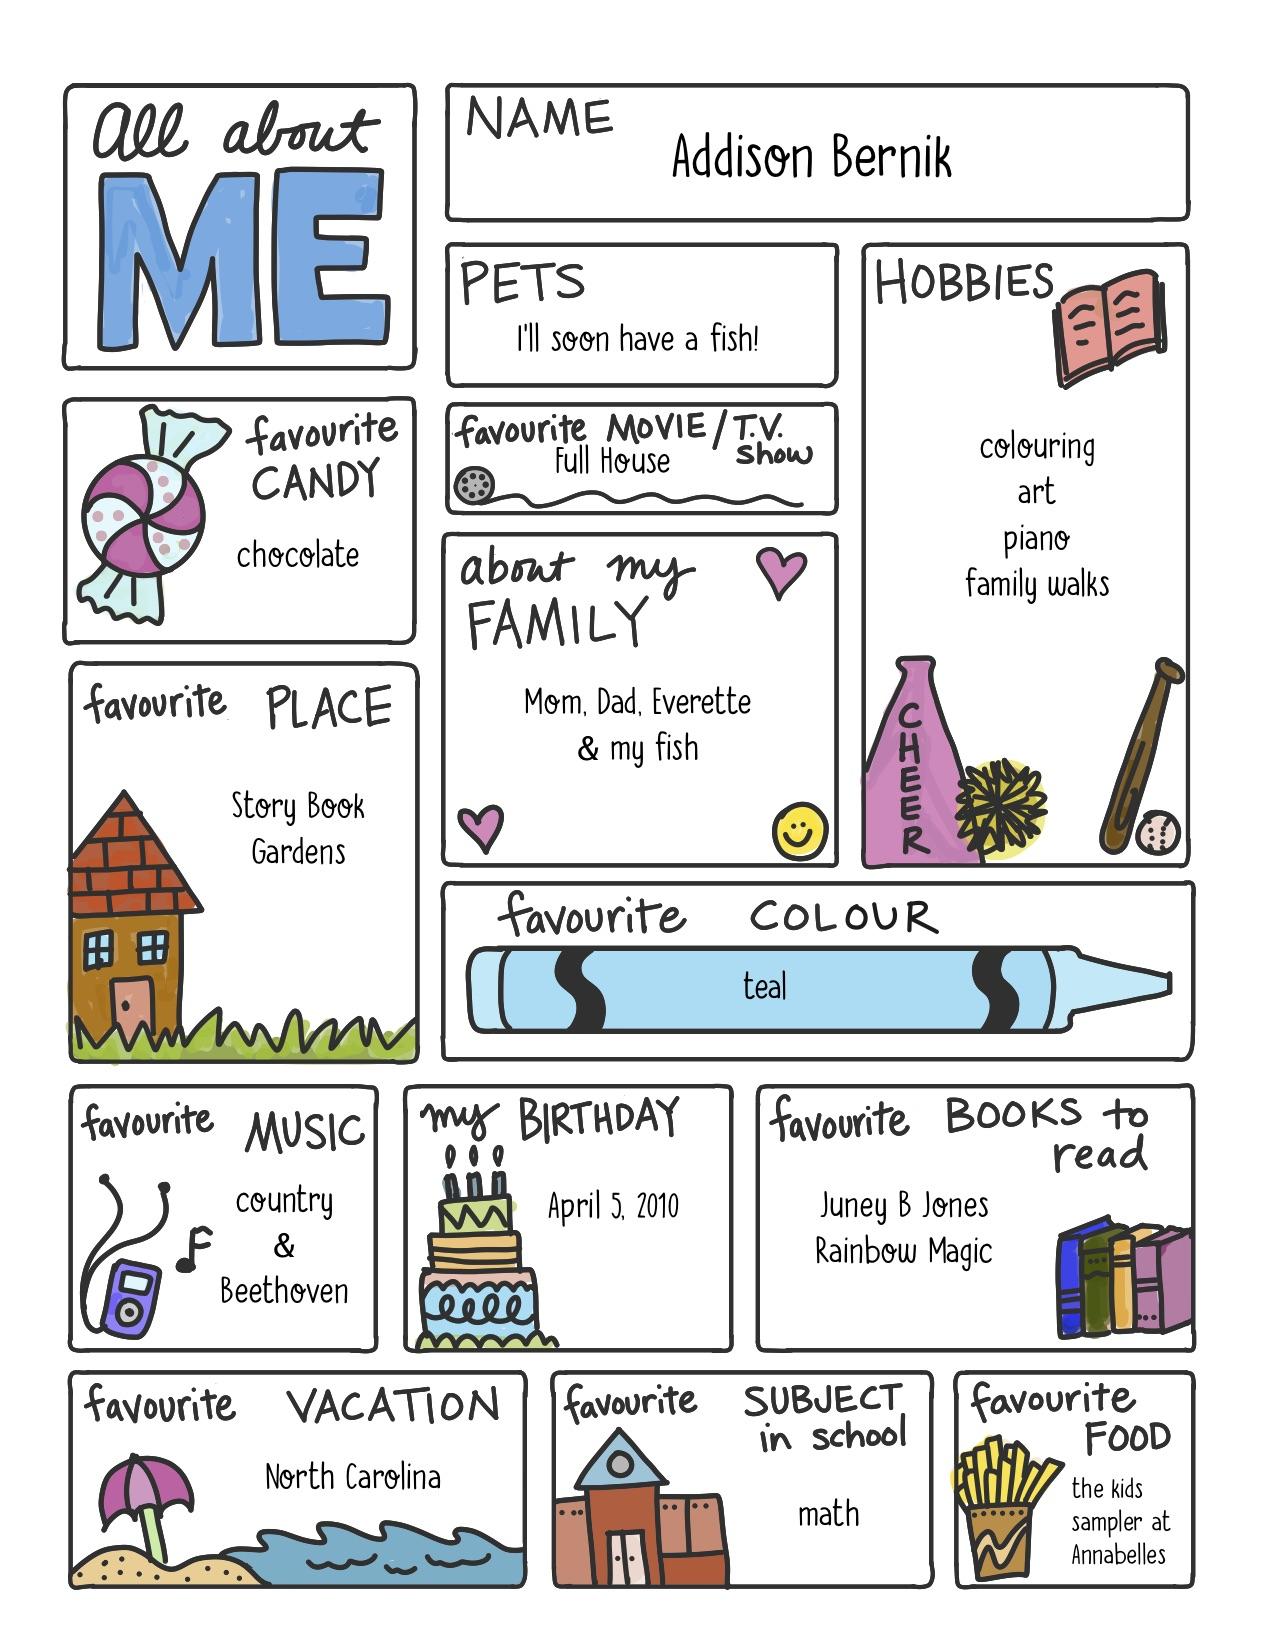 All About Me - Addison.jpg